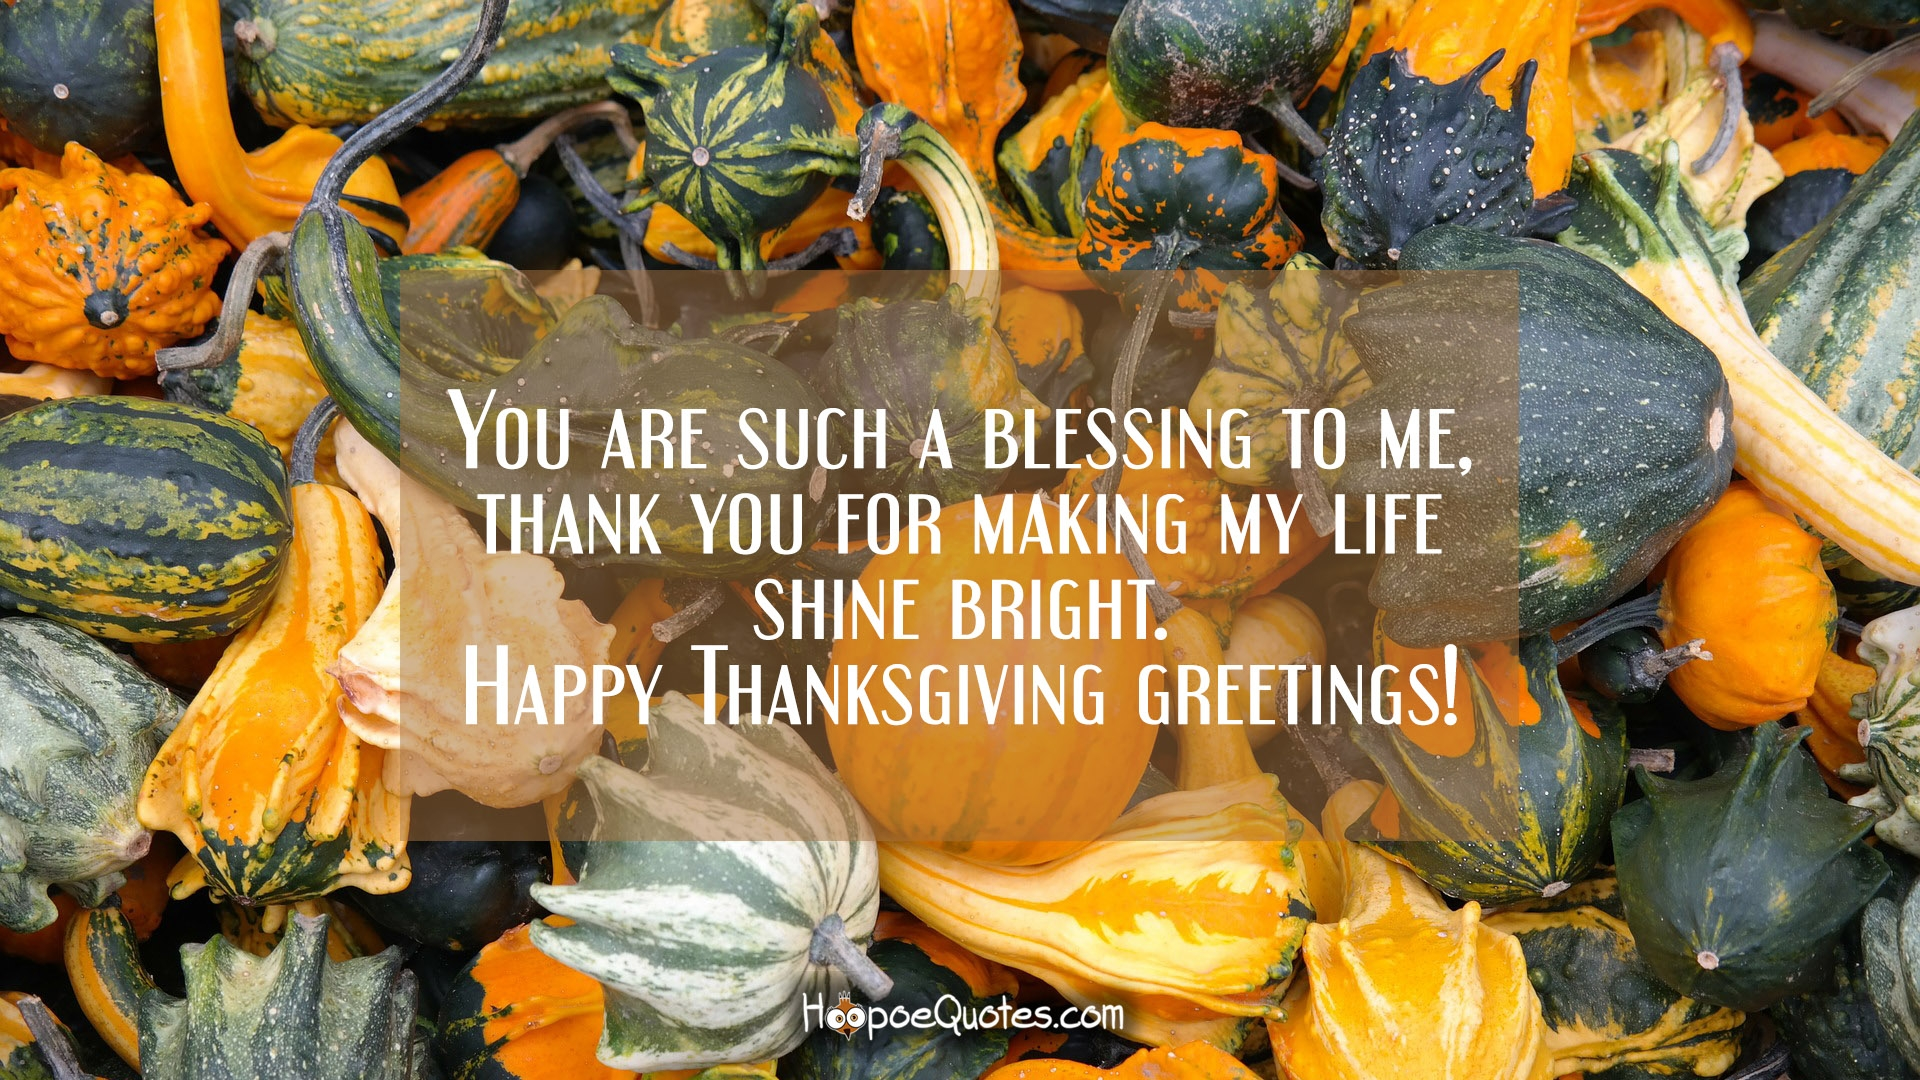 Fanciful You Are Such A Blessing To Thank You Making My Life Shine Happy Thanksgiving Messages Facebook Happy Thanksgiving Messages Business inspiration Happy Thanksgiving Messages